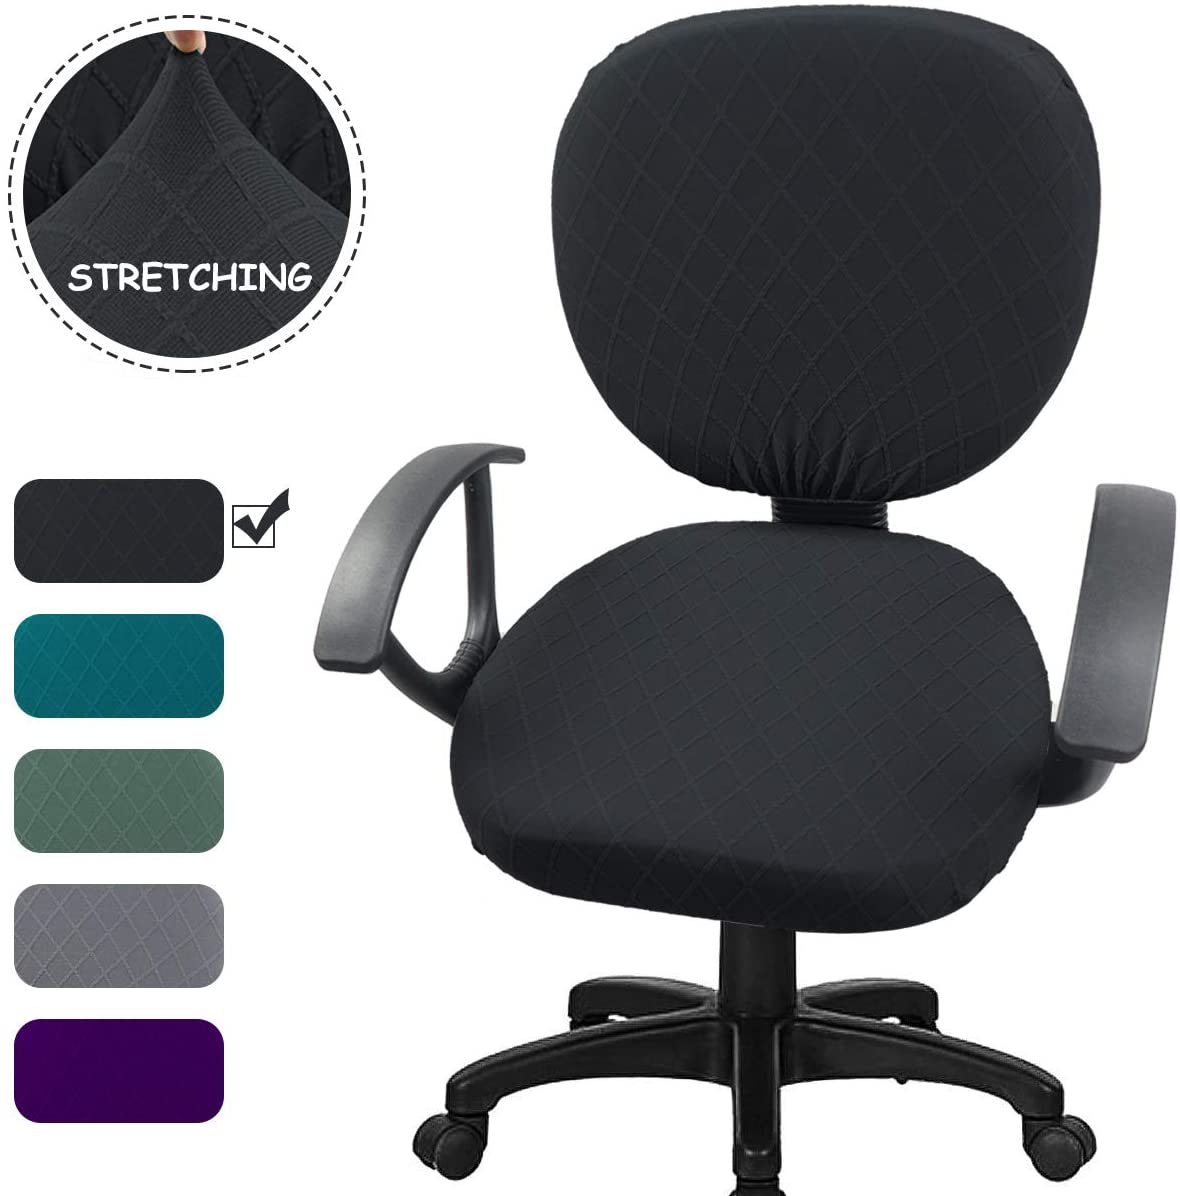 Office Chair Cover, Soft Stretchable Geometric Jacquard Office Computer Chair Square Round Cushion Seat Cover & Back Slipcover, Charcoal Black-Dark Gray